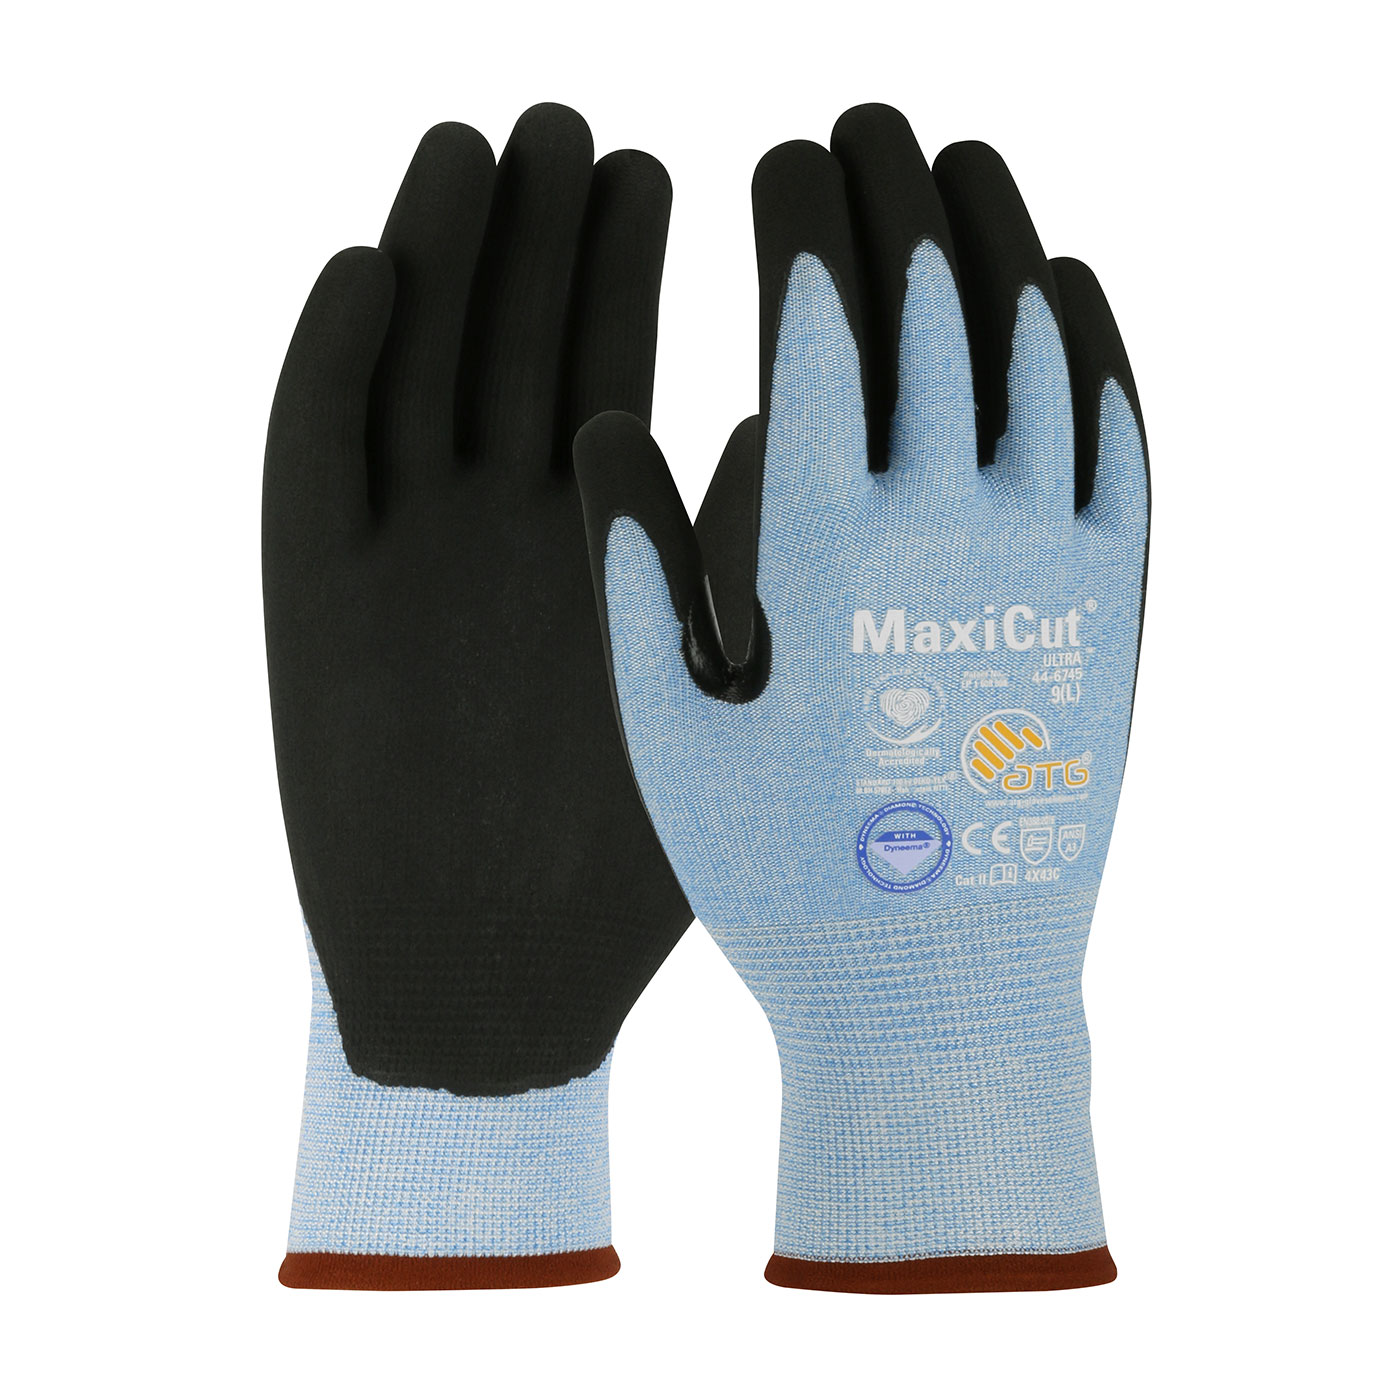 #44-6745 PIP® MaxiCut® Ultra™ Dyneema Diamond Seamless Knit Glove w/ Premium Nitrile Coated Micro-Foam Micro Dot Grip